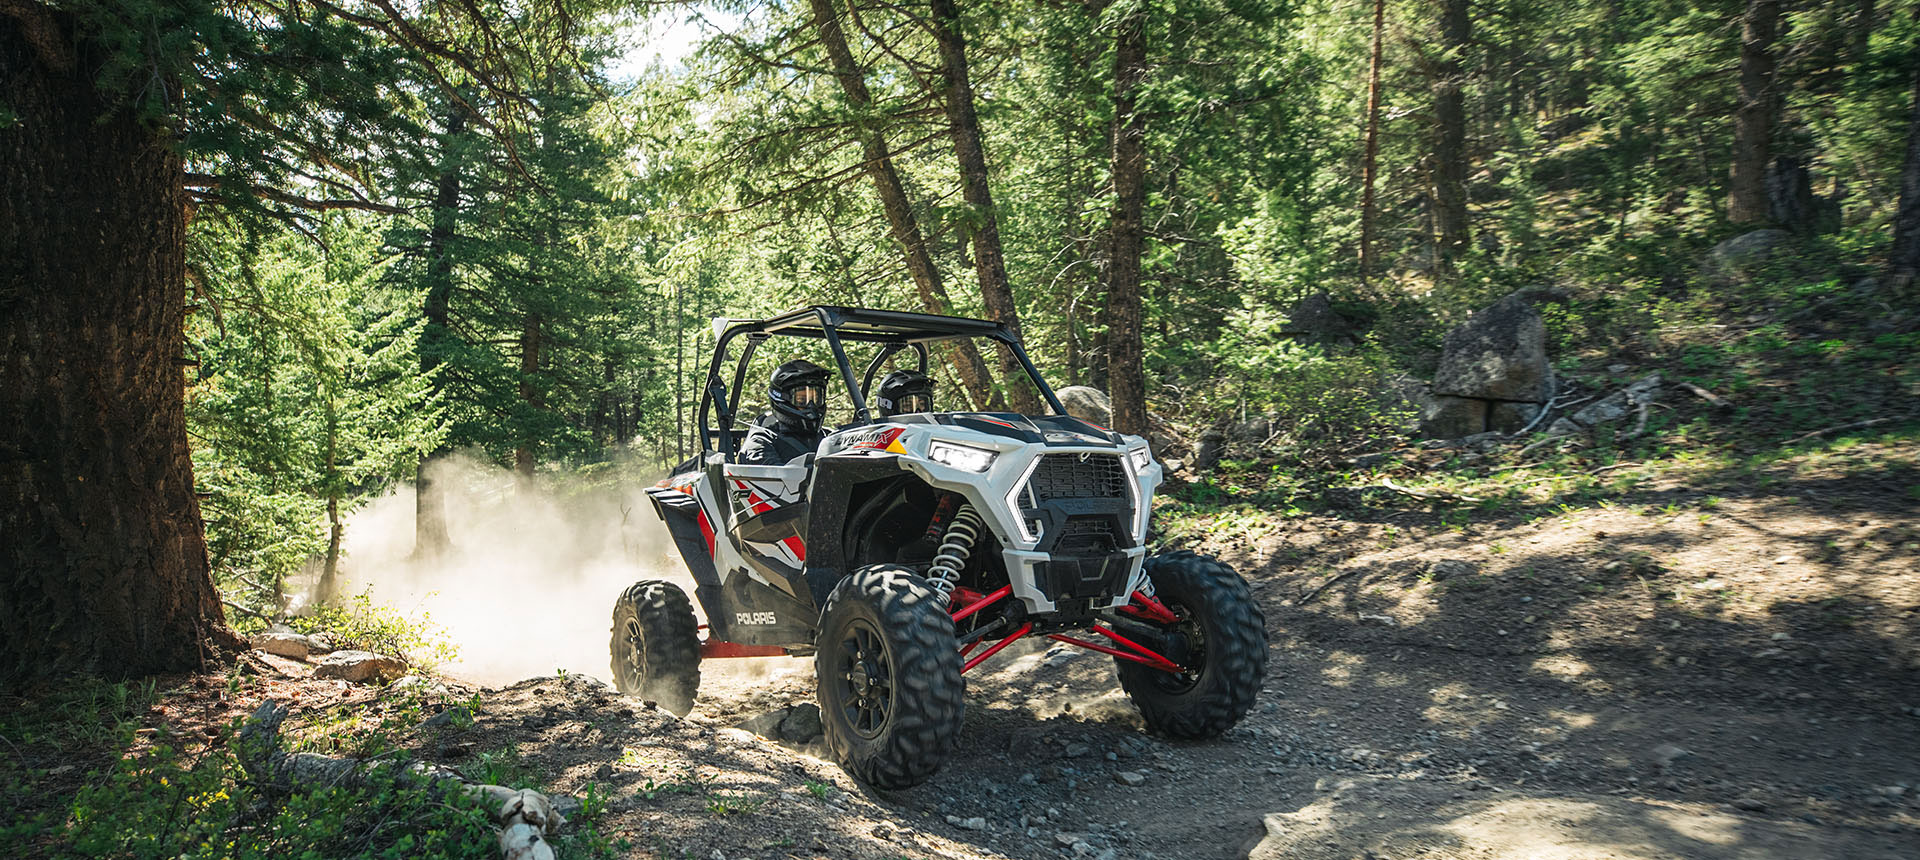 2019 Polaris RZR XP 1000 in Logan, Utah - Photo 9